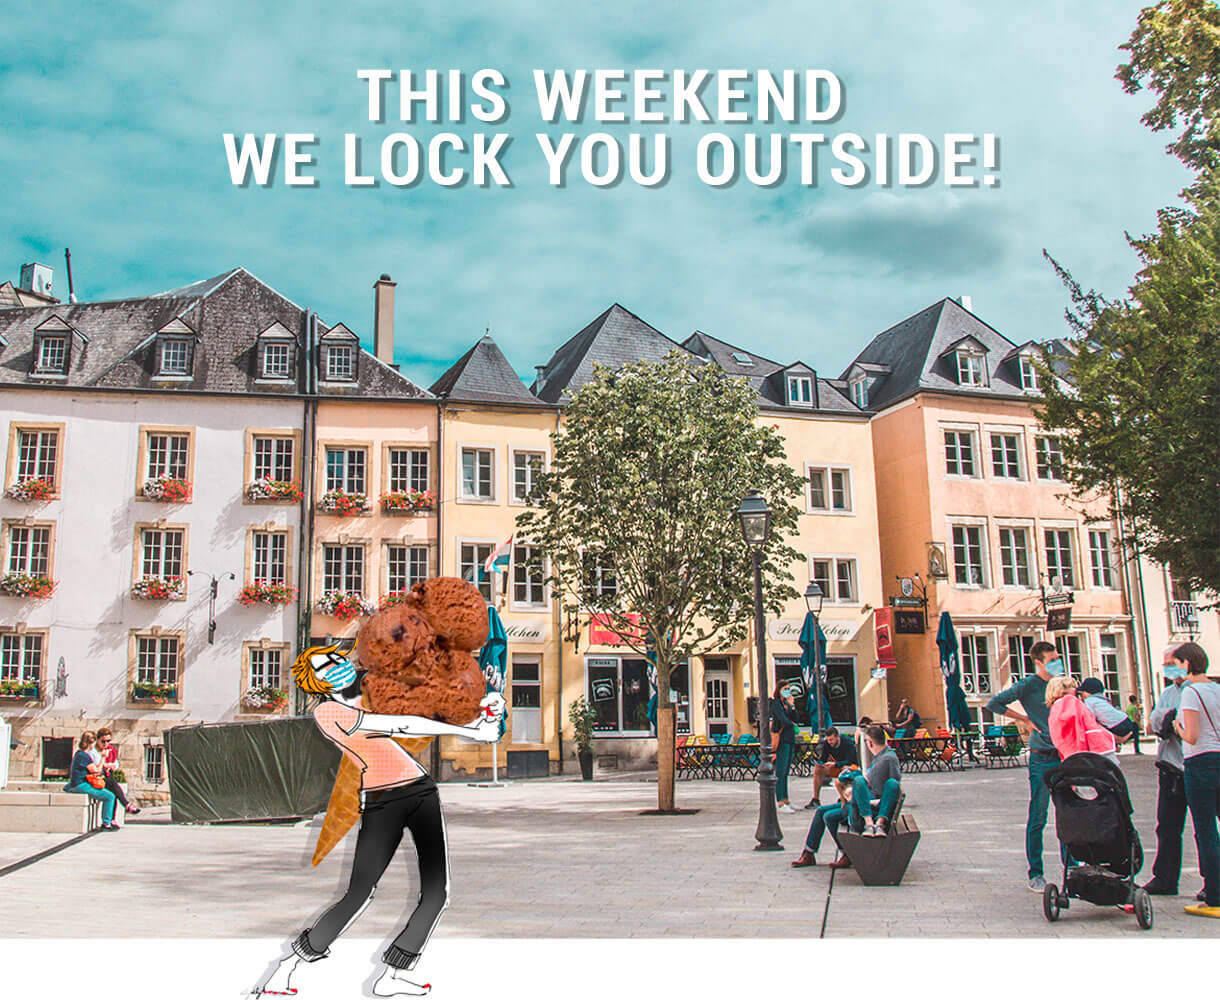 This weekend we lock you outside! ☀️